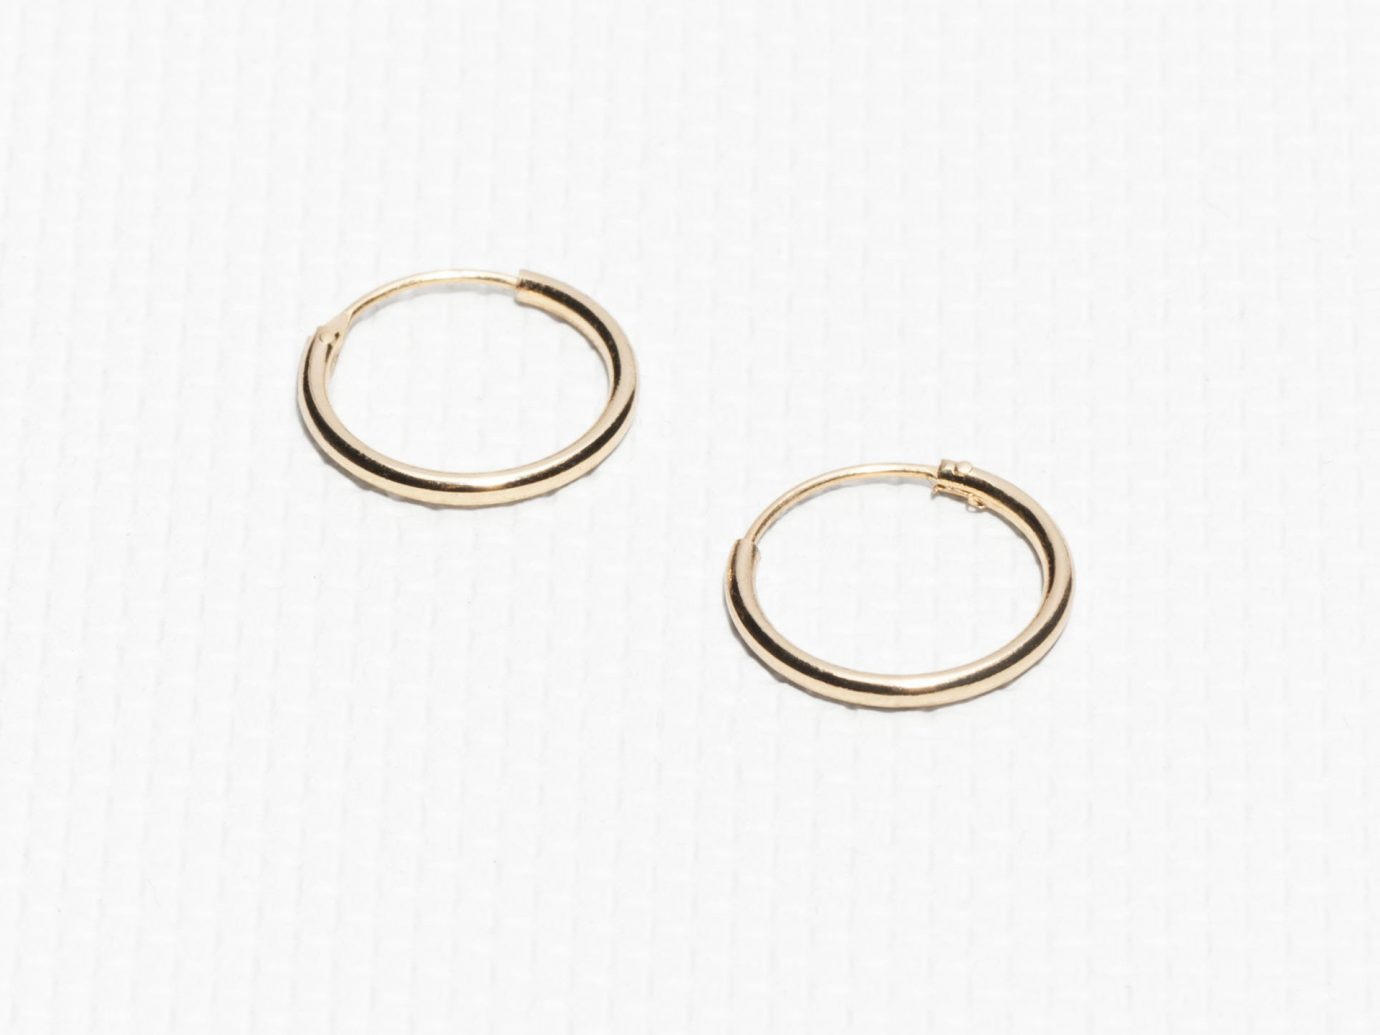 Spring Travel Style + Design Summer Travel Travel Lifestyle Travel Shop earrings jewellery fashion accessory body jewelry metal silver product design jewelry making ring rings product circle platinum